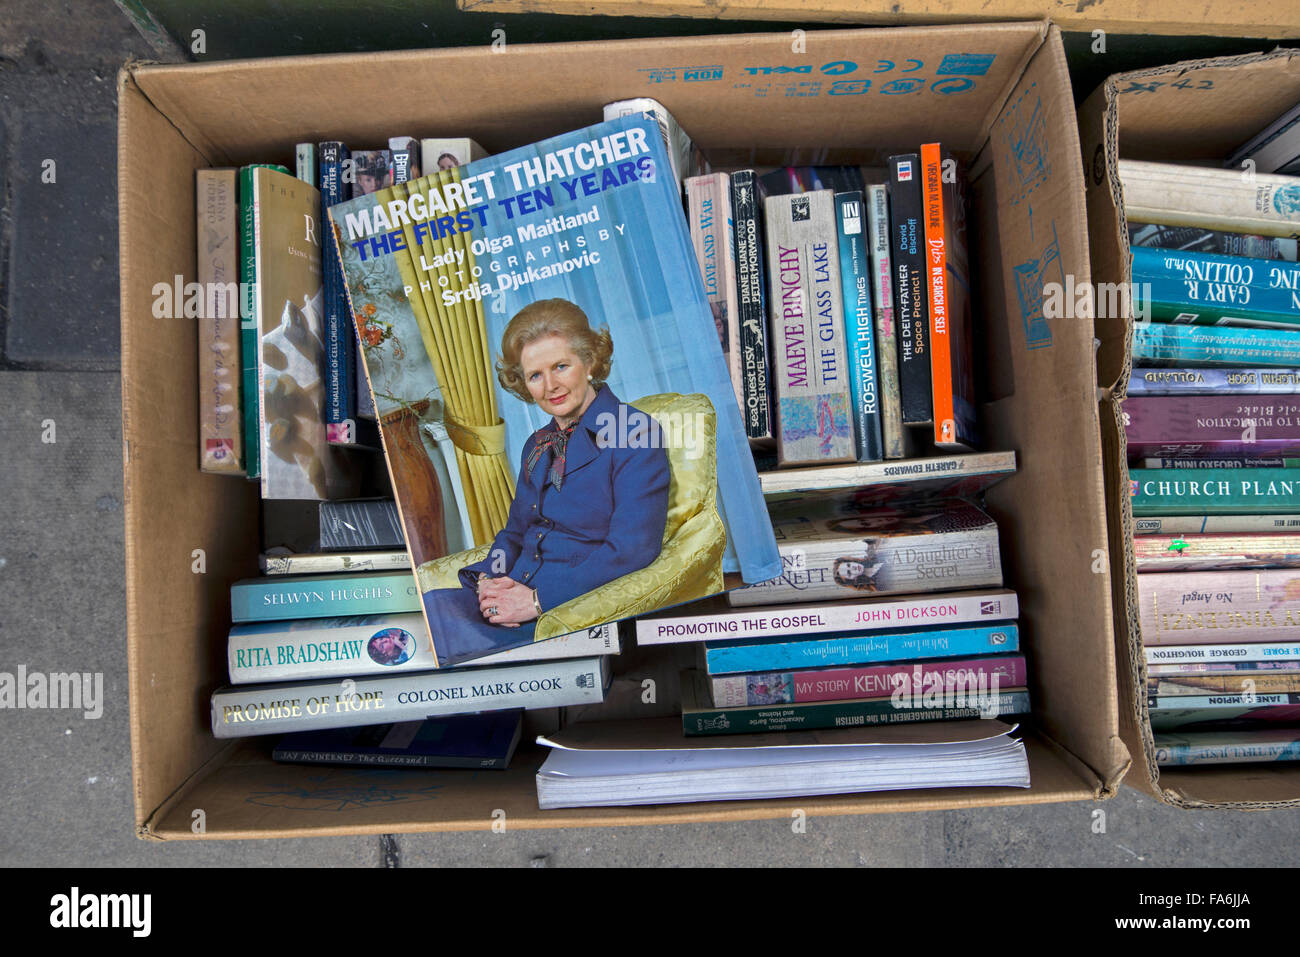 Margaret Thatcher biography, The First Ten Years, in the cheap box outside a secondhand bookshop in Edinburgh, Scotland, - Stock Image